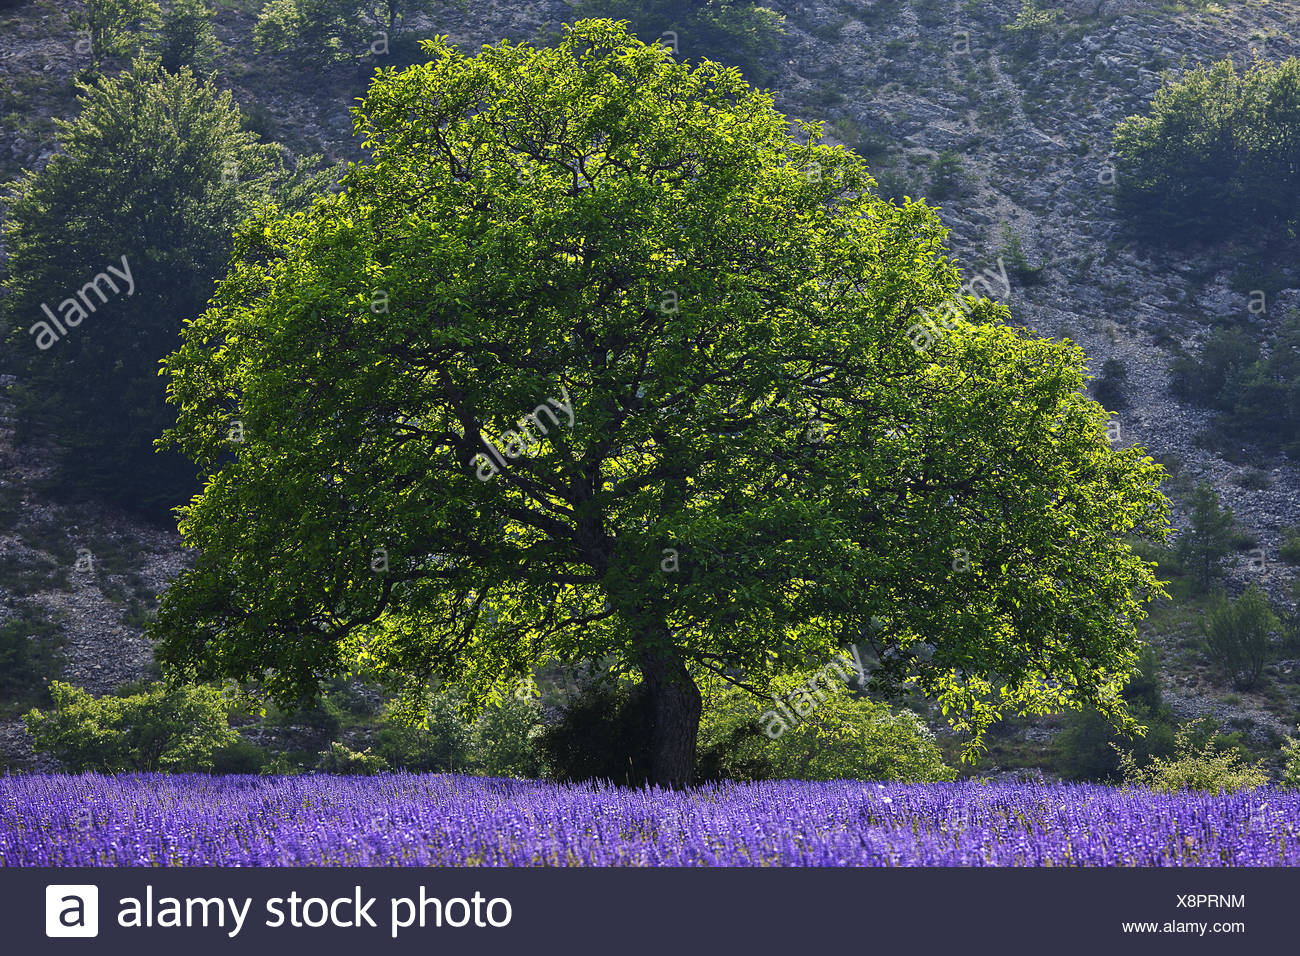 tree and lavender field, Provence, France - Stock Image